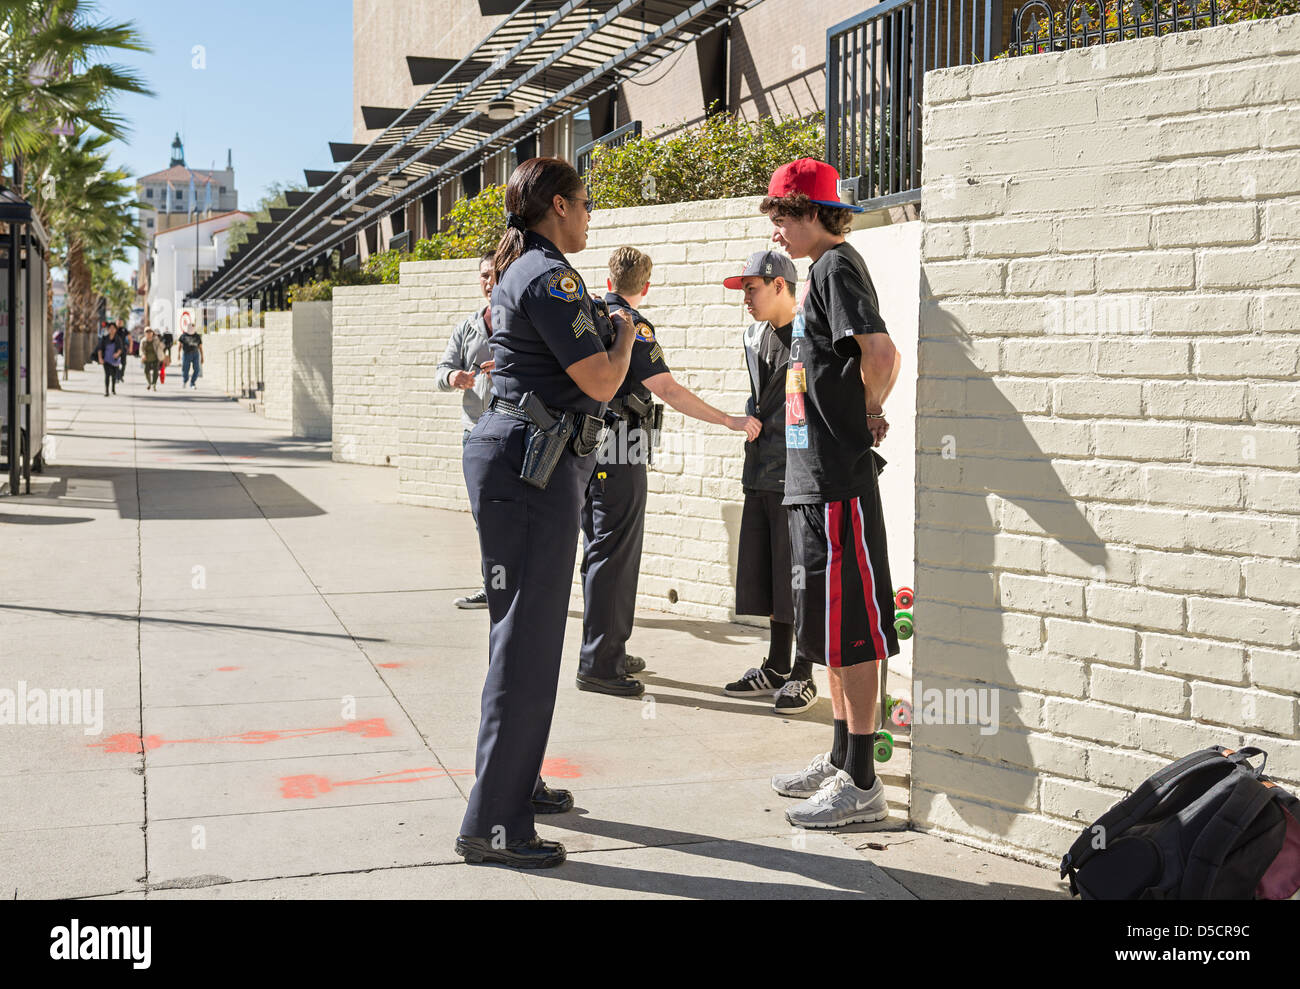 Teenagers getting arrested on the streets. - Stock Image